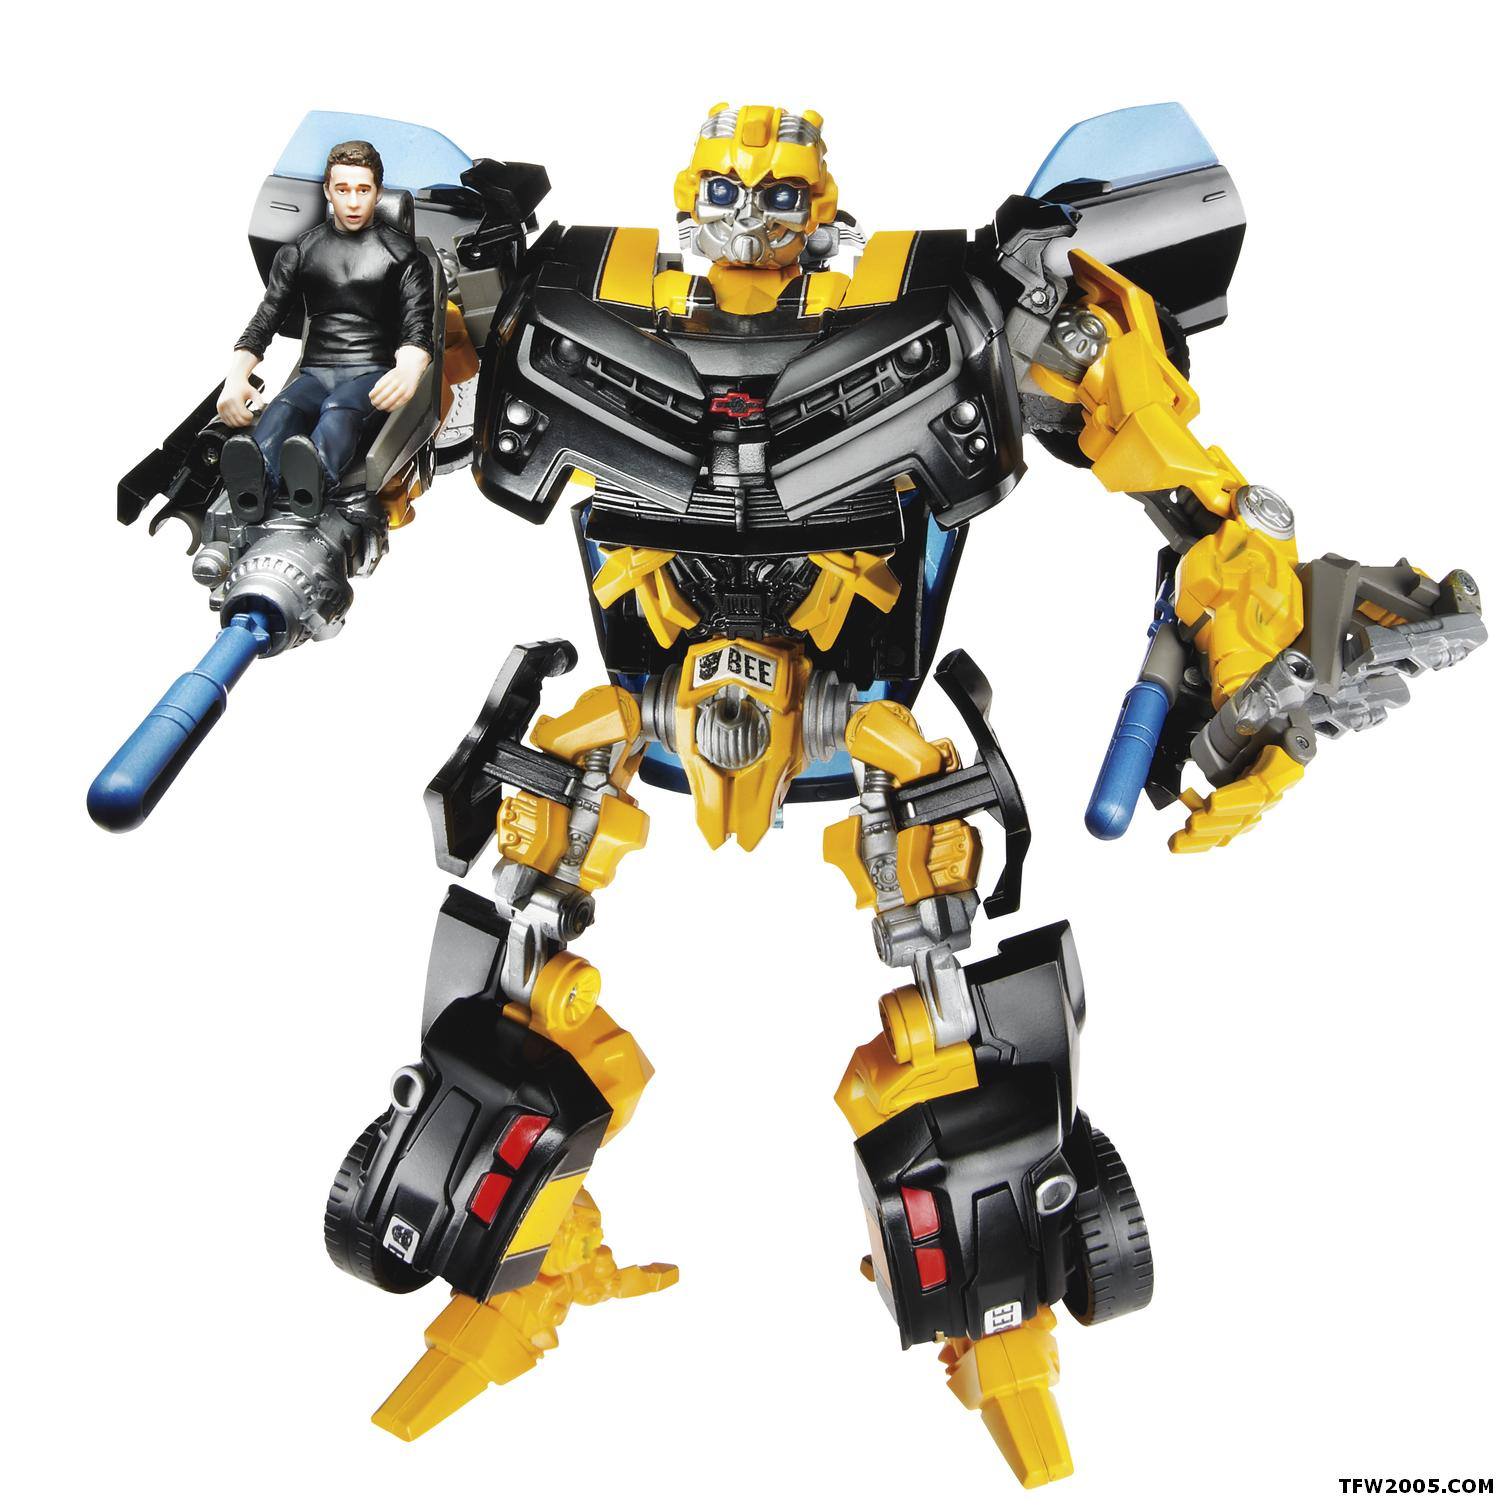 Bumblebee with Sam Witwicky Image